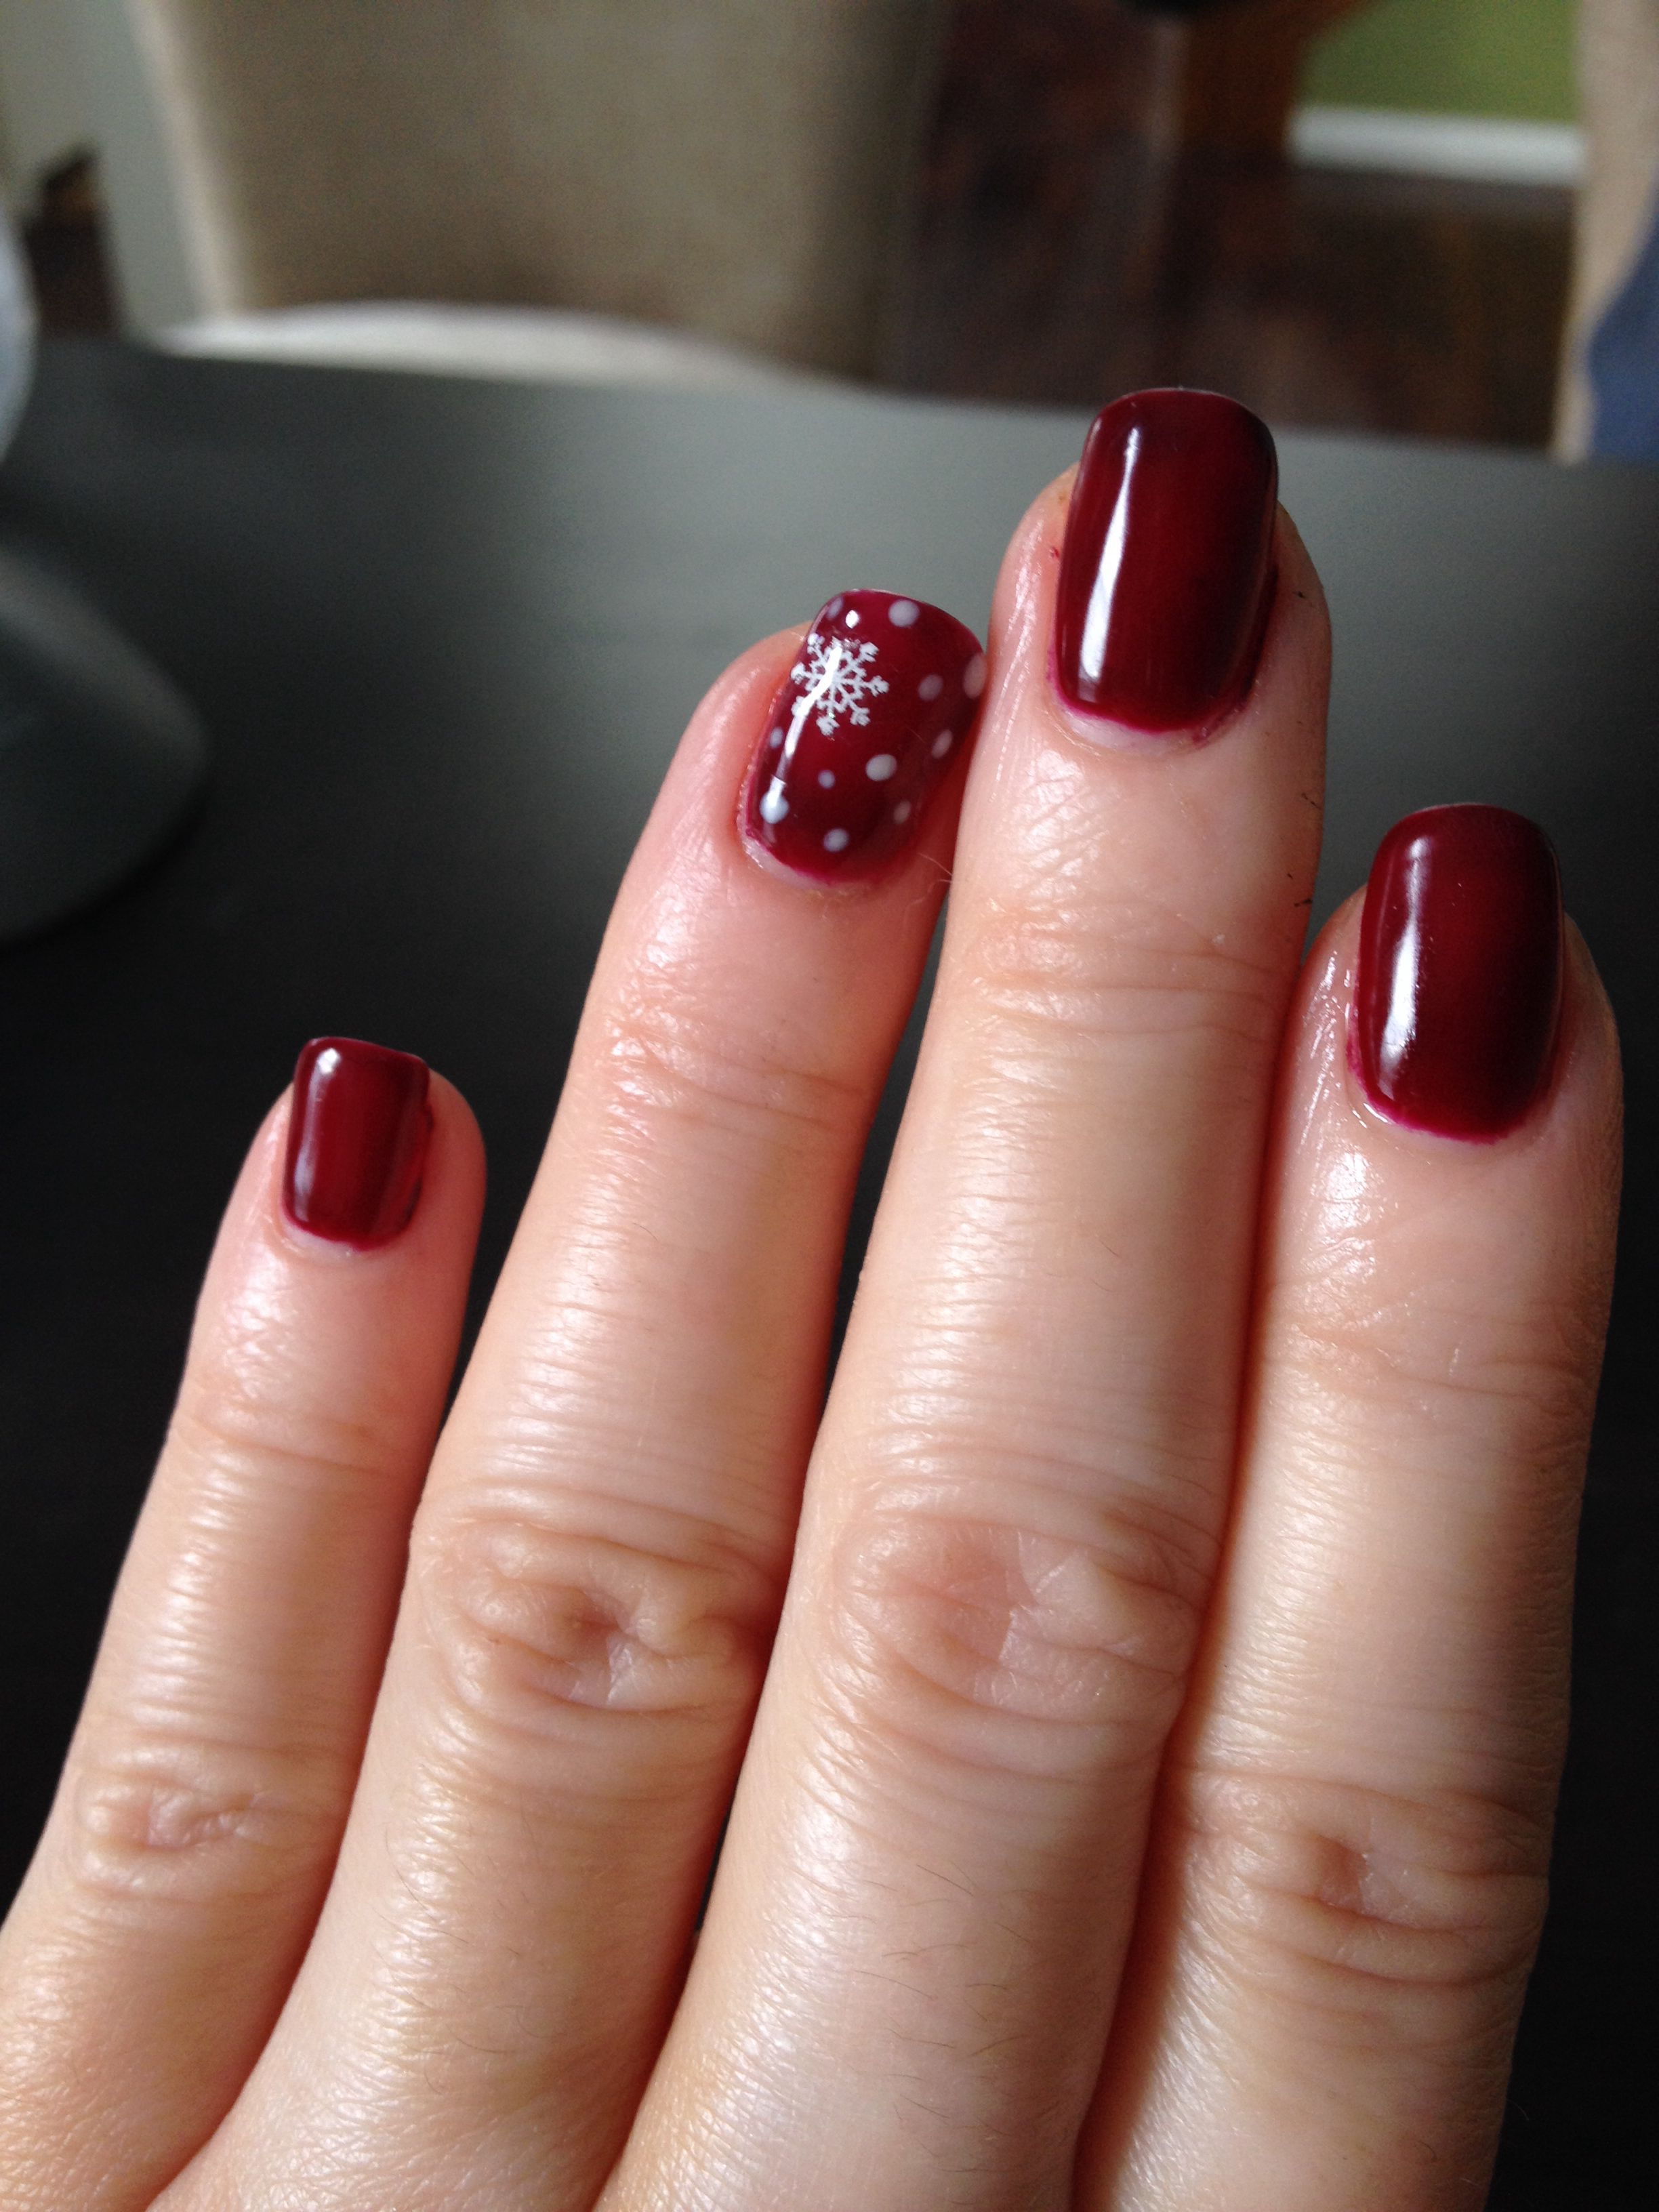 Christmas Nails Shellac Nail Art Been Doing For 14years This Is My Favorite So Far